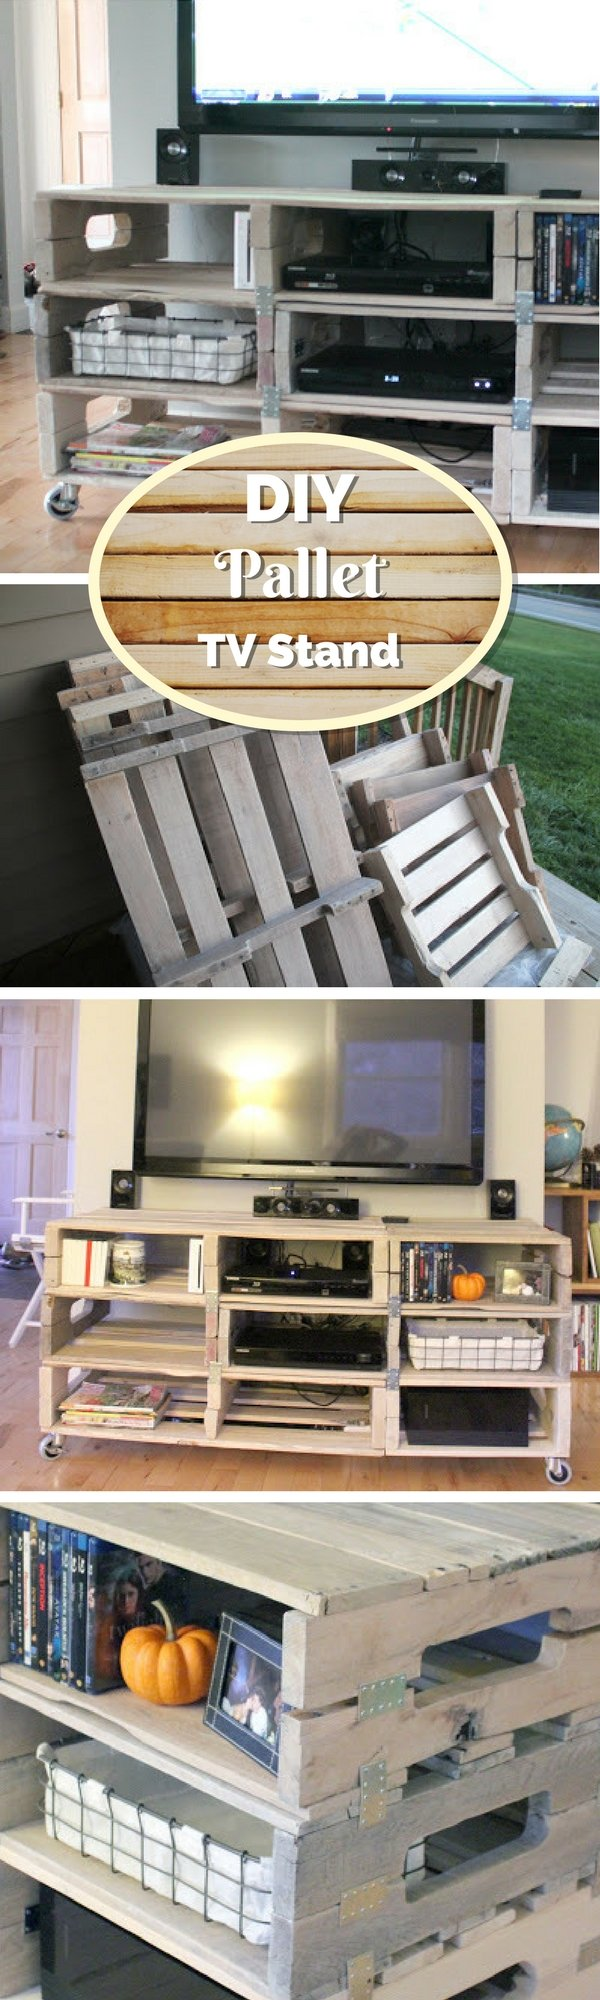 21 Diy Tv Stand Ideas For Your Weekend Home Project # Meuble Support Tv